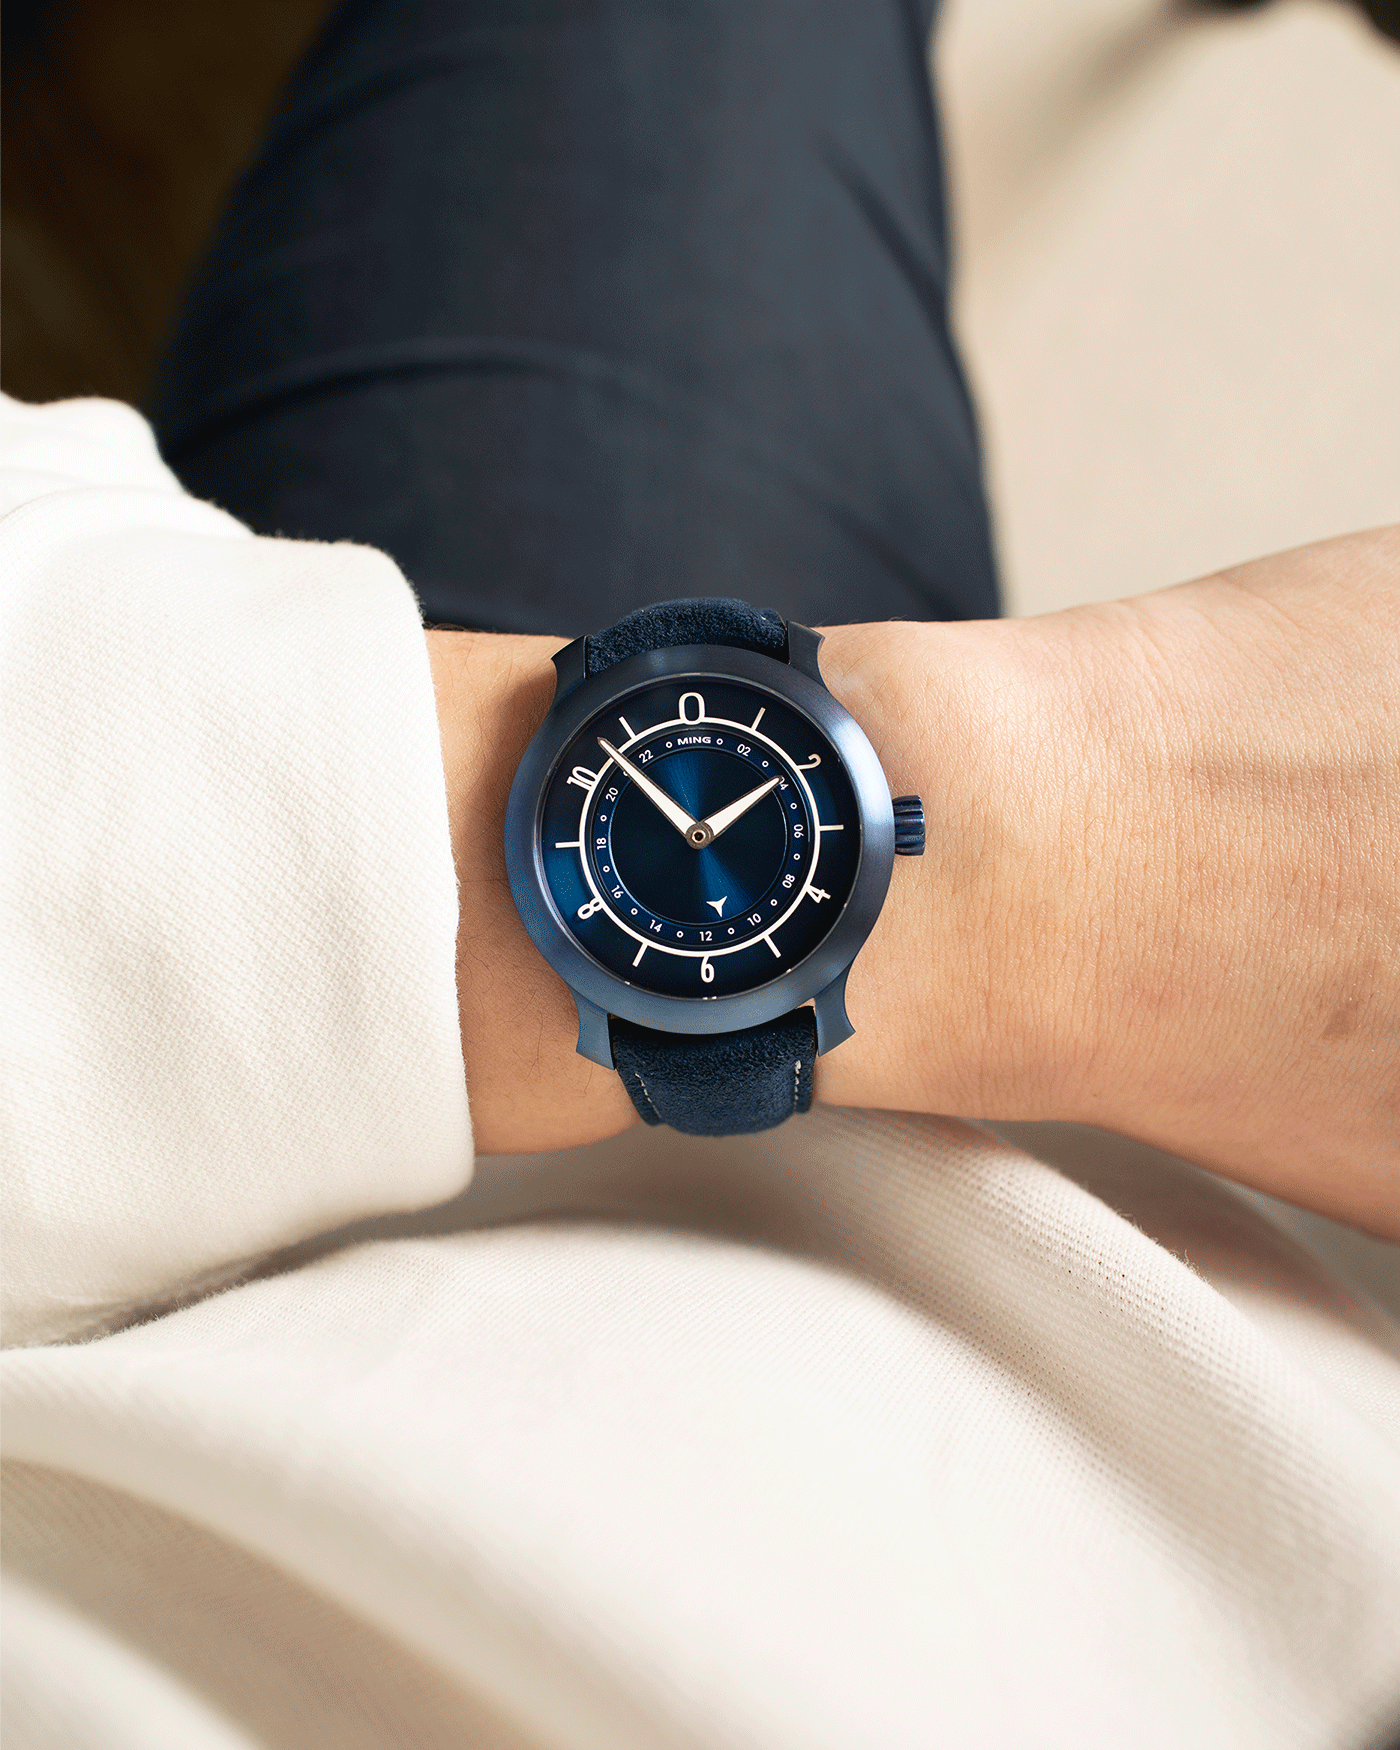 Brand: Ming Year: 2018 Model: 17.03 Material: Grade 2 Titanium Movement: Self-Winding Sellita SW 330-1 Case Diameter: 38mm Strap: Ming Blue Suede Strap and Grade 5 Ultra Blue Titanium Tang Buckle